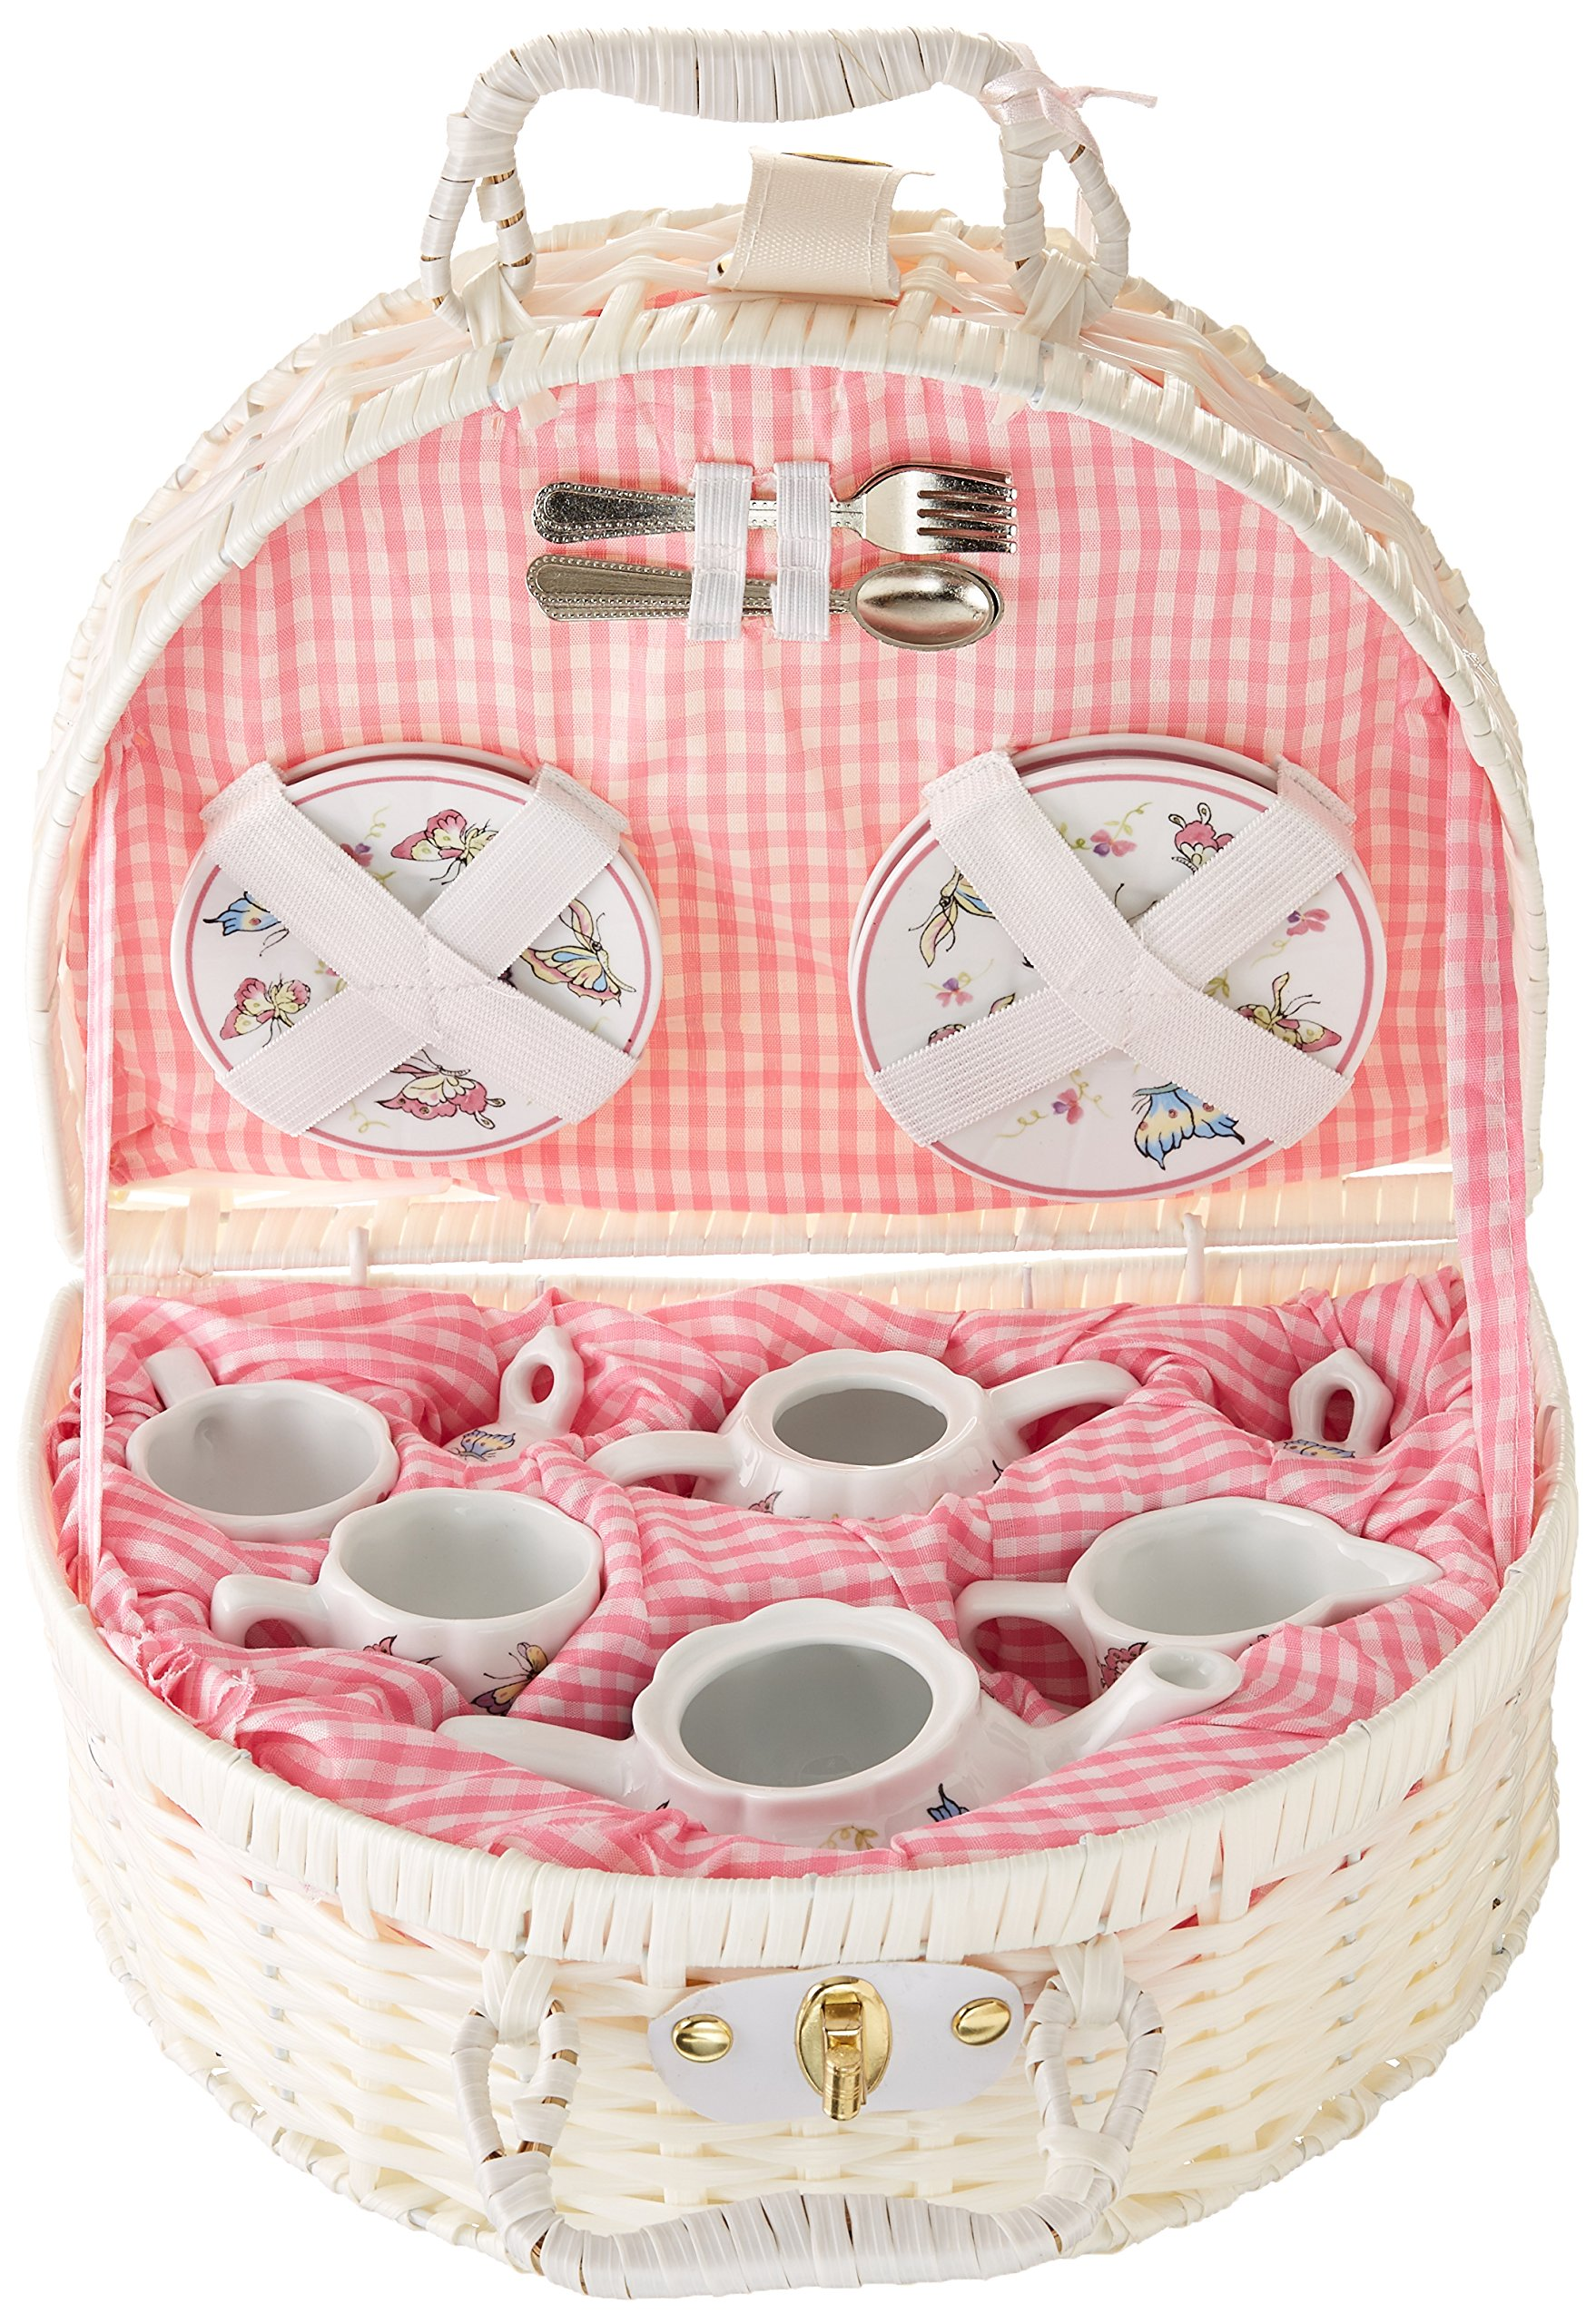 Delton Products Pink Butterfly Children's Tea Set with Basket by Delton Products (Image #1)